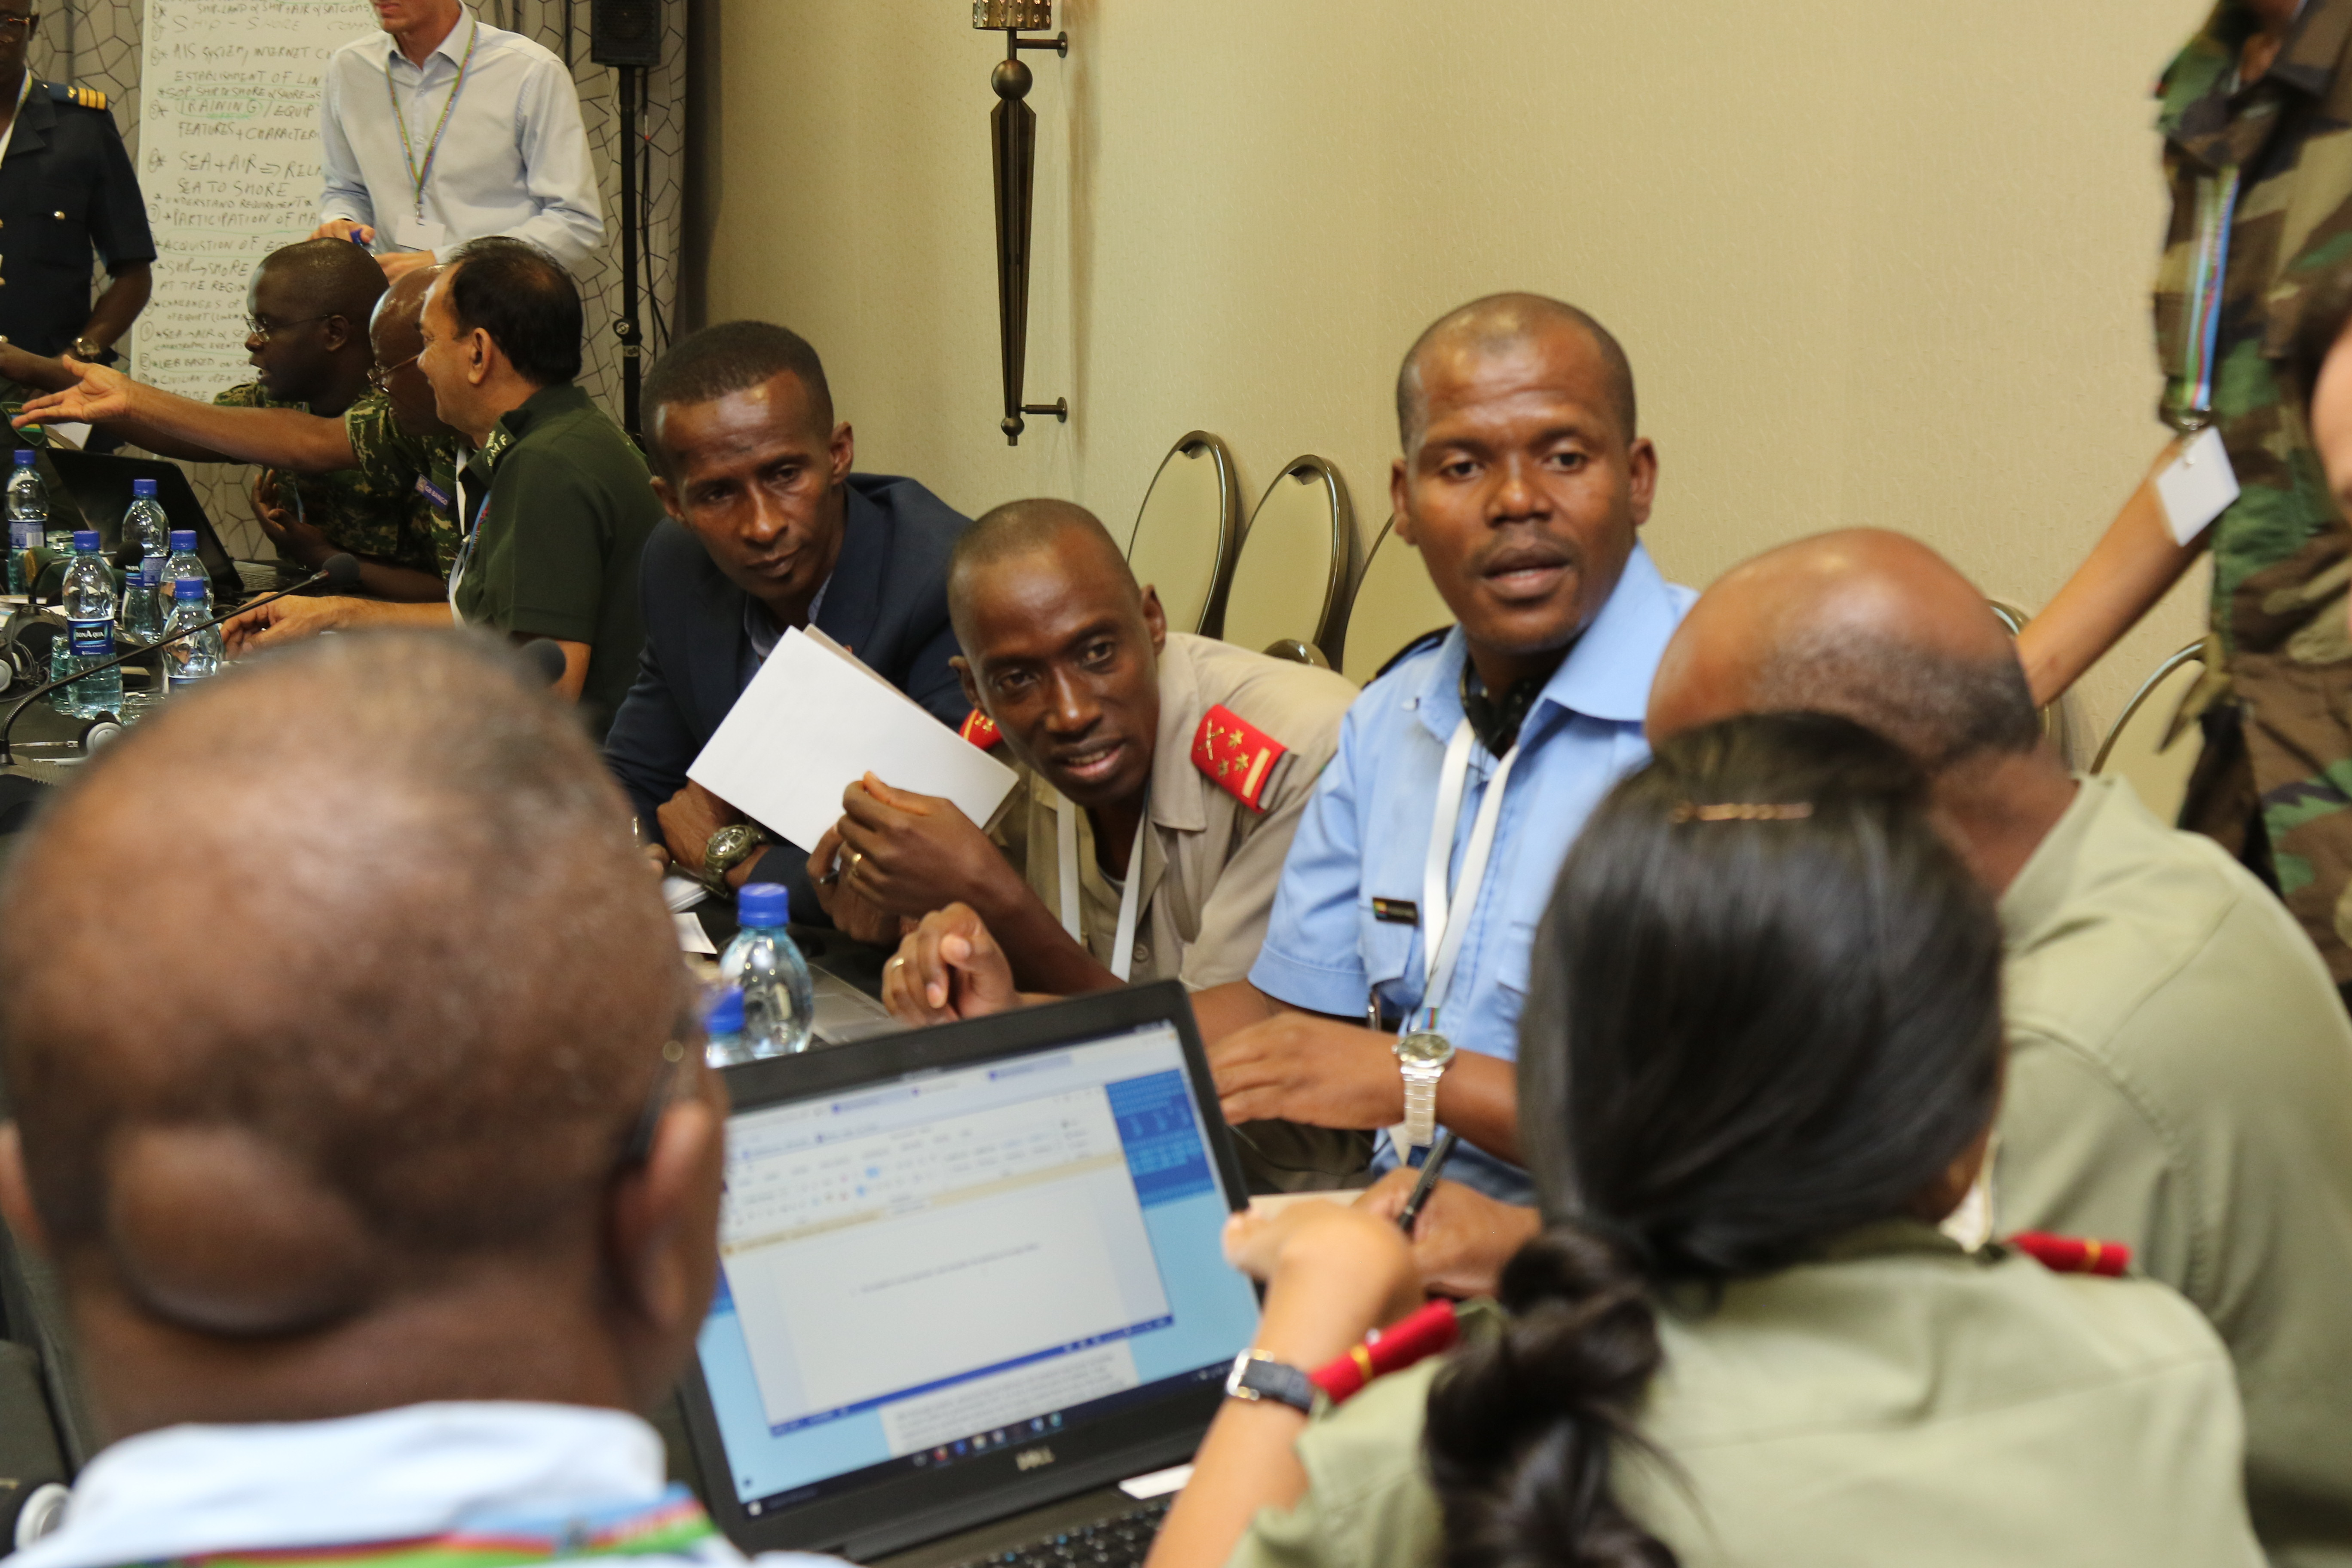 Africa Endeavor participants conduct a cyber security tabletop exercise Aug. 2, 2018 in Santa Maria, Sal, Cabo Verde. Africa Endeavor is an annual senior leader and communications symposium designed to counter violent extremist organization operations mandated by African Union and the United Nations.